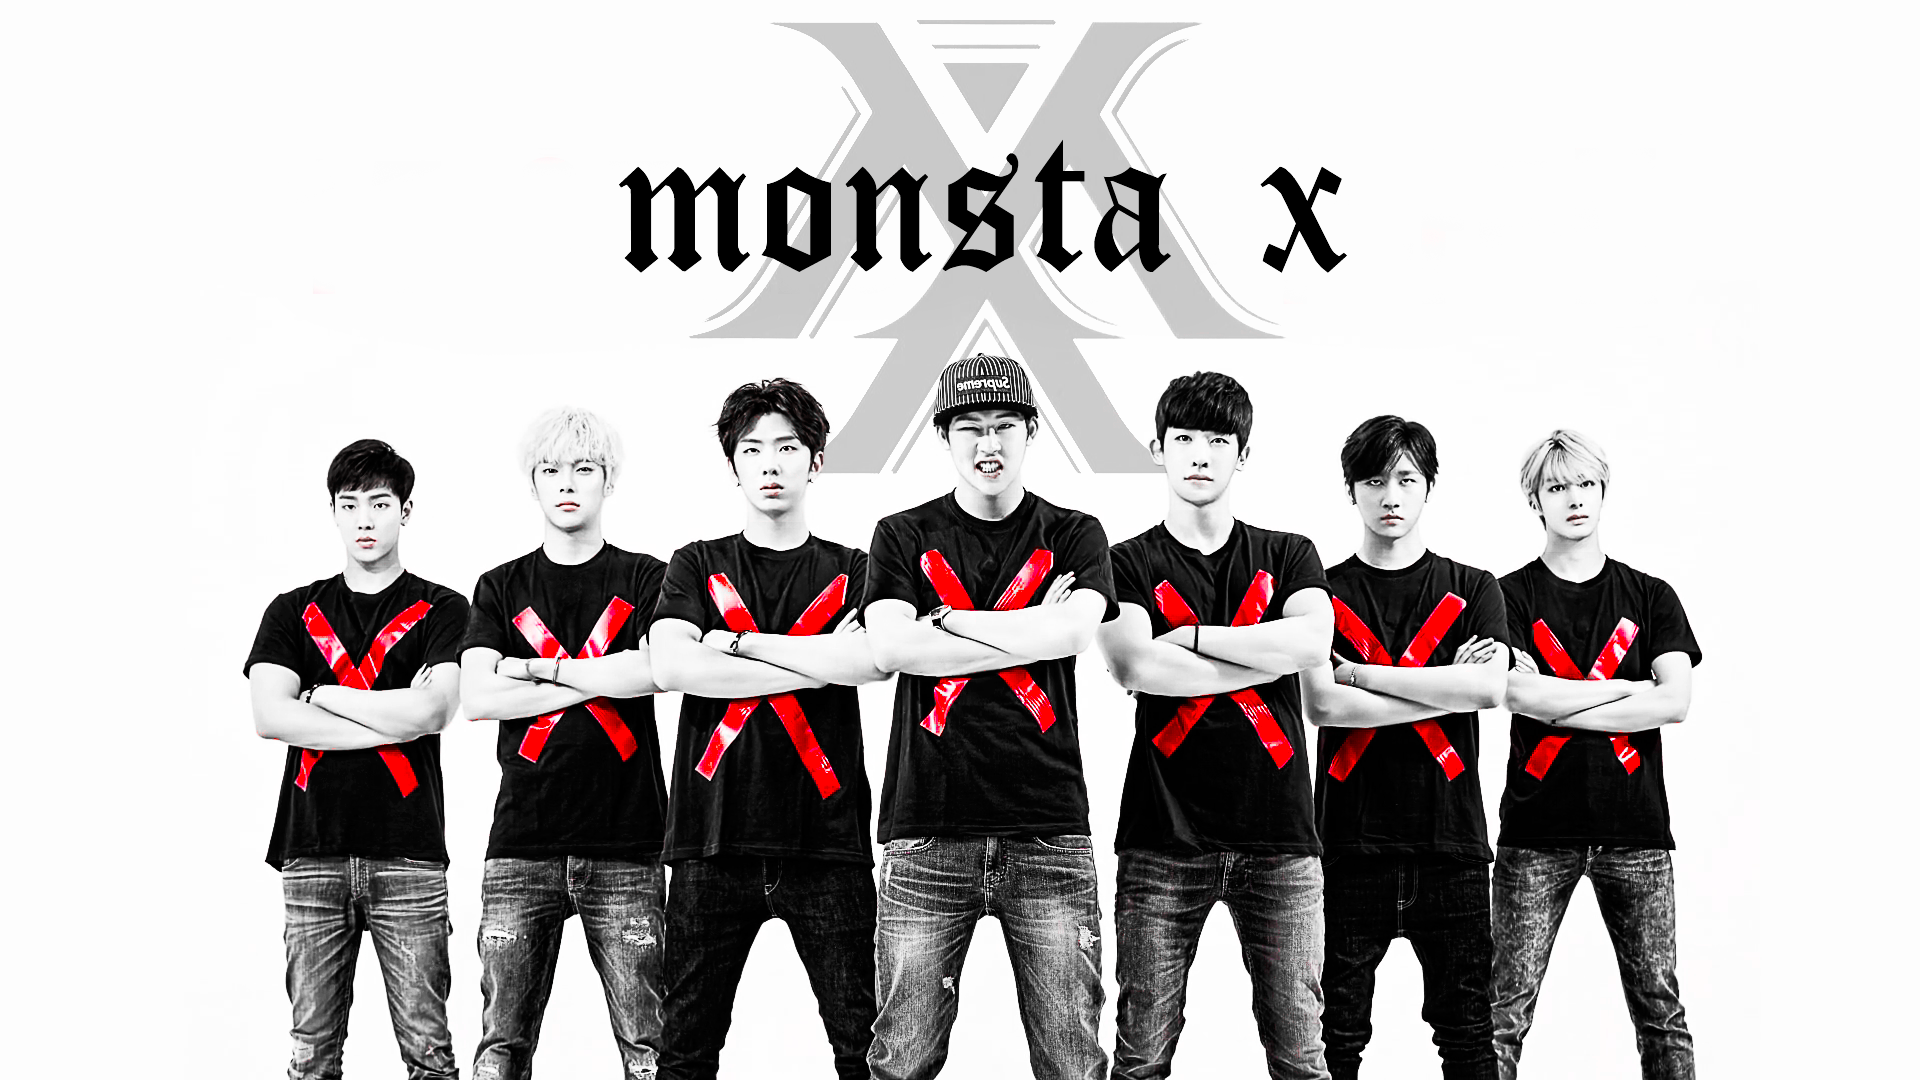 Monstax hotties ♔♥